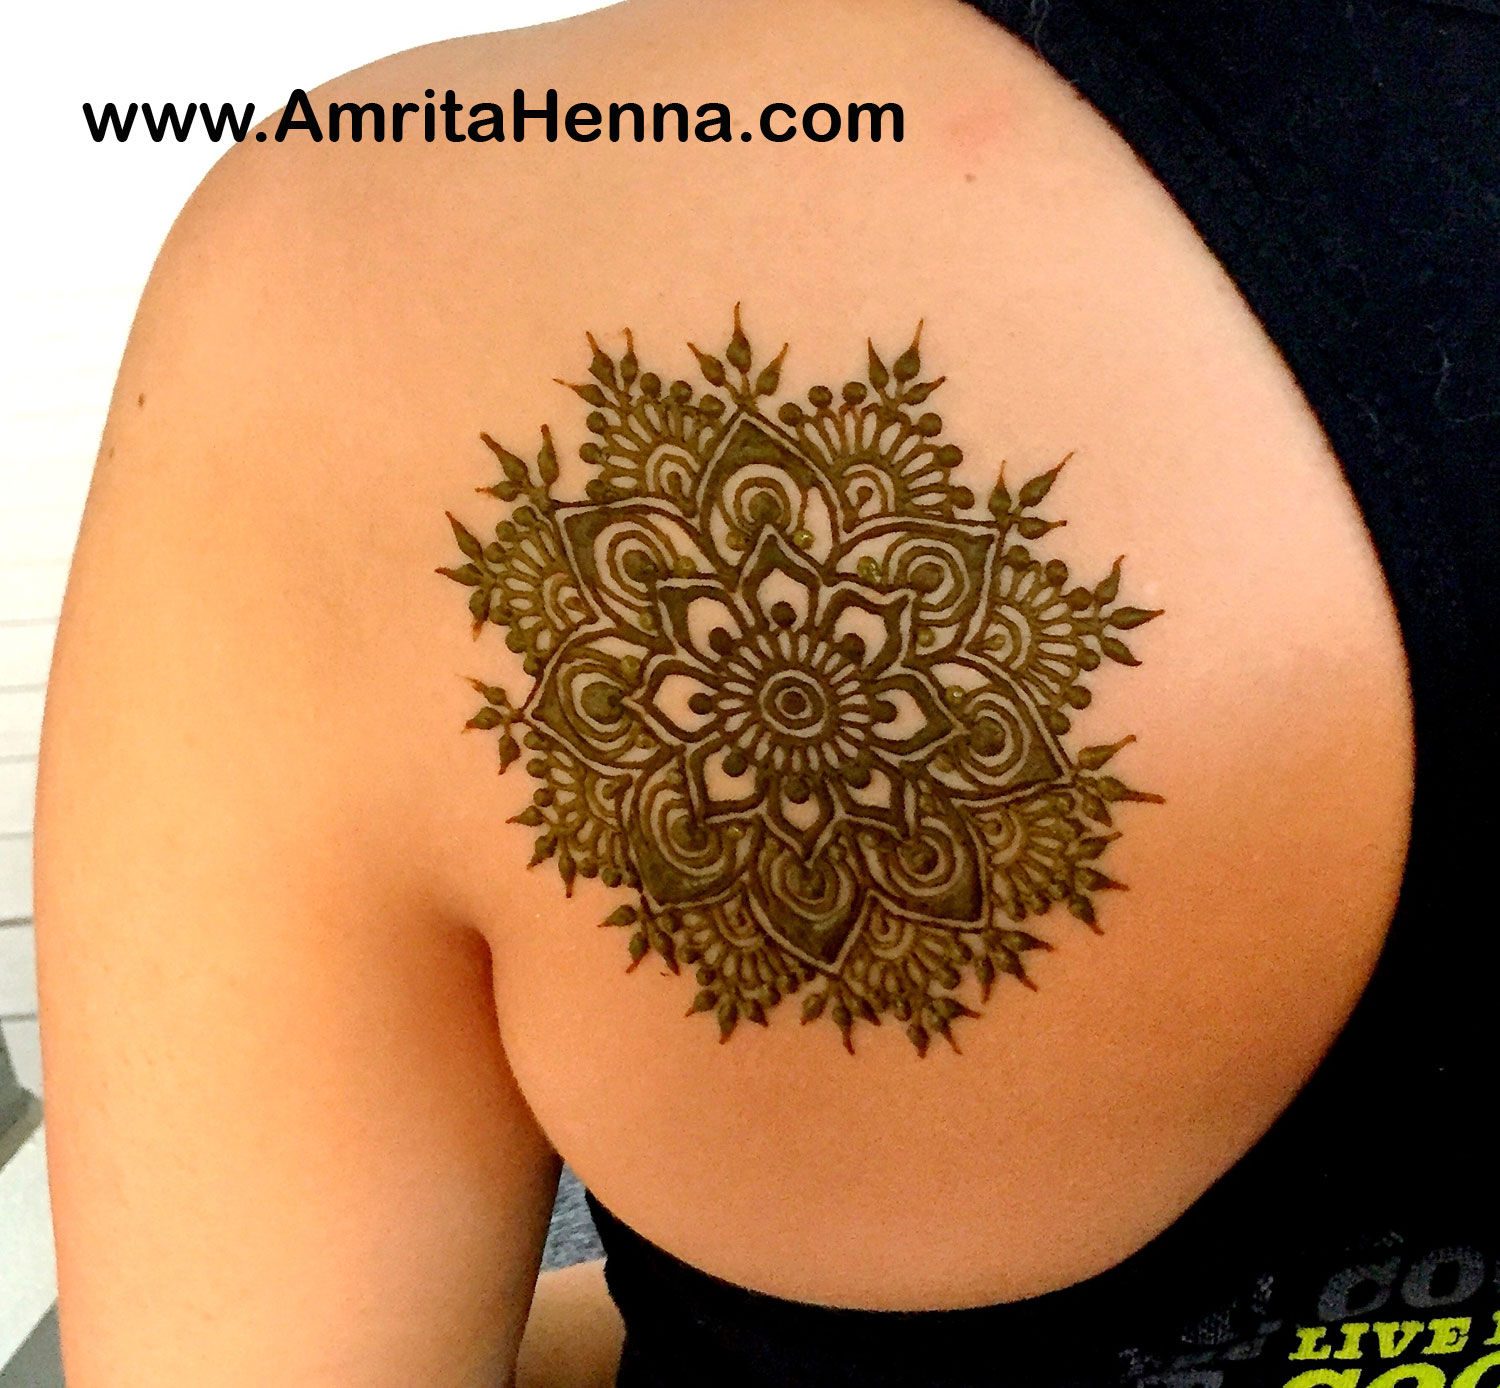 Top 5 Trendy Shoulder Henna Designs For Summer Henna Tattoo Mehndi